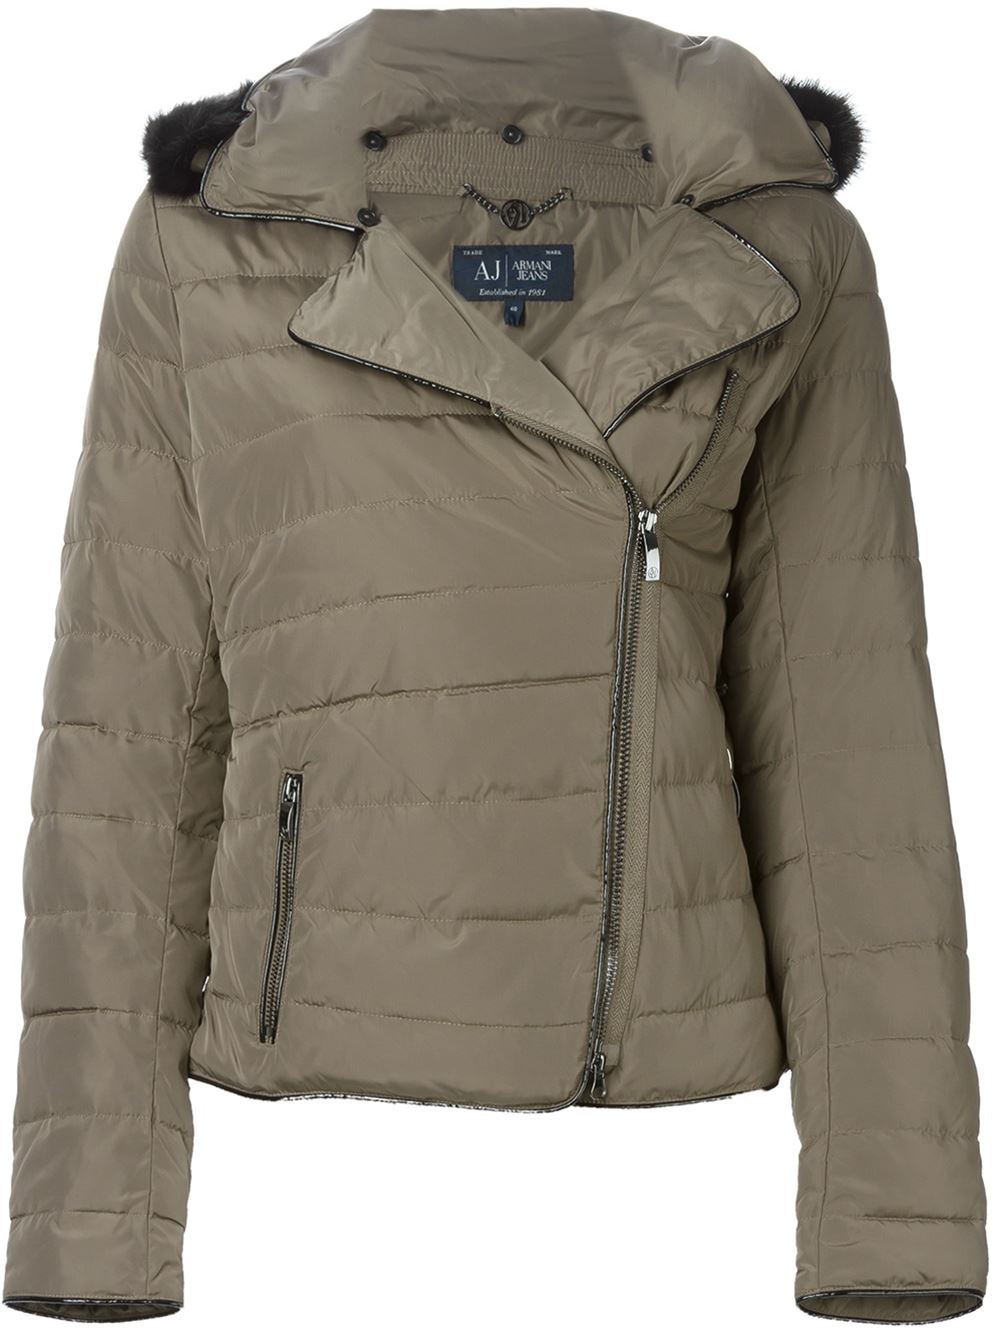 Armani jeans Faux-Fur-Collar Quilted Jacket in Brown   Lyst : armani jeans quilted jacket - Adamdwight.com